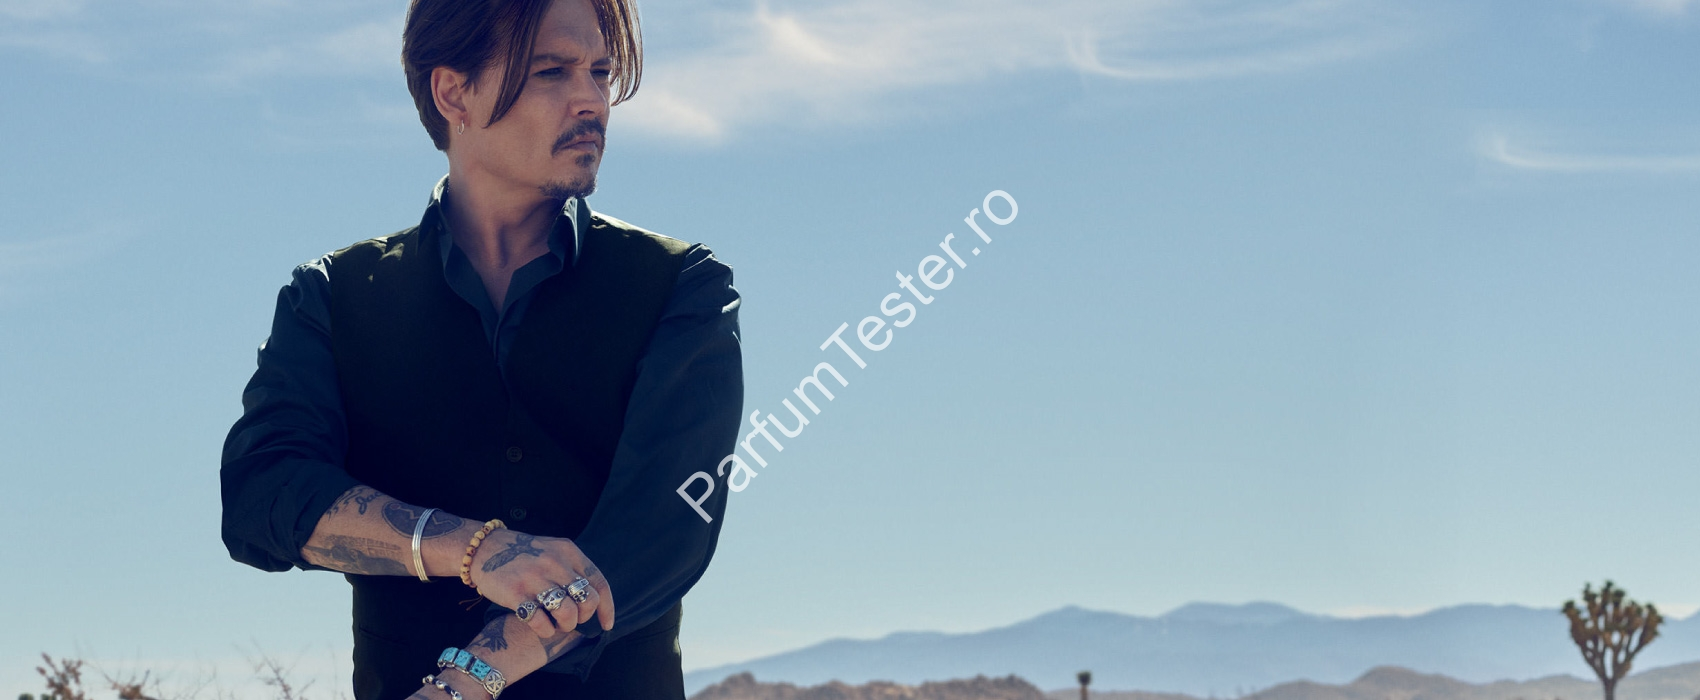 Dior Sauvage Johnny Depp